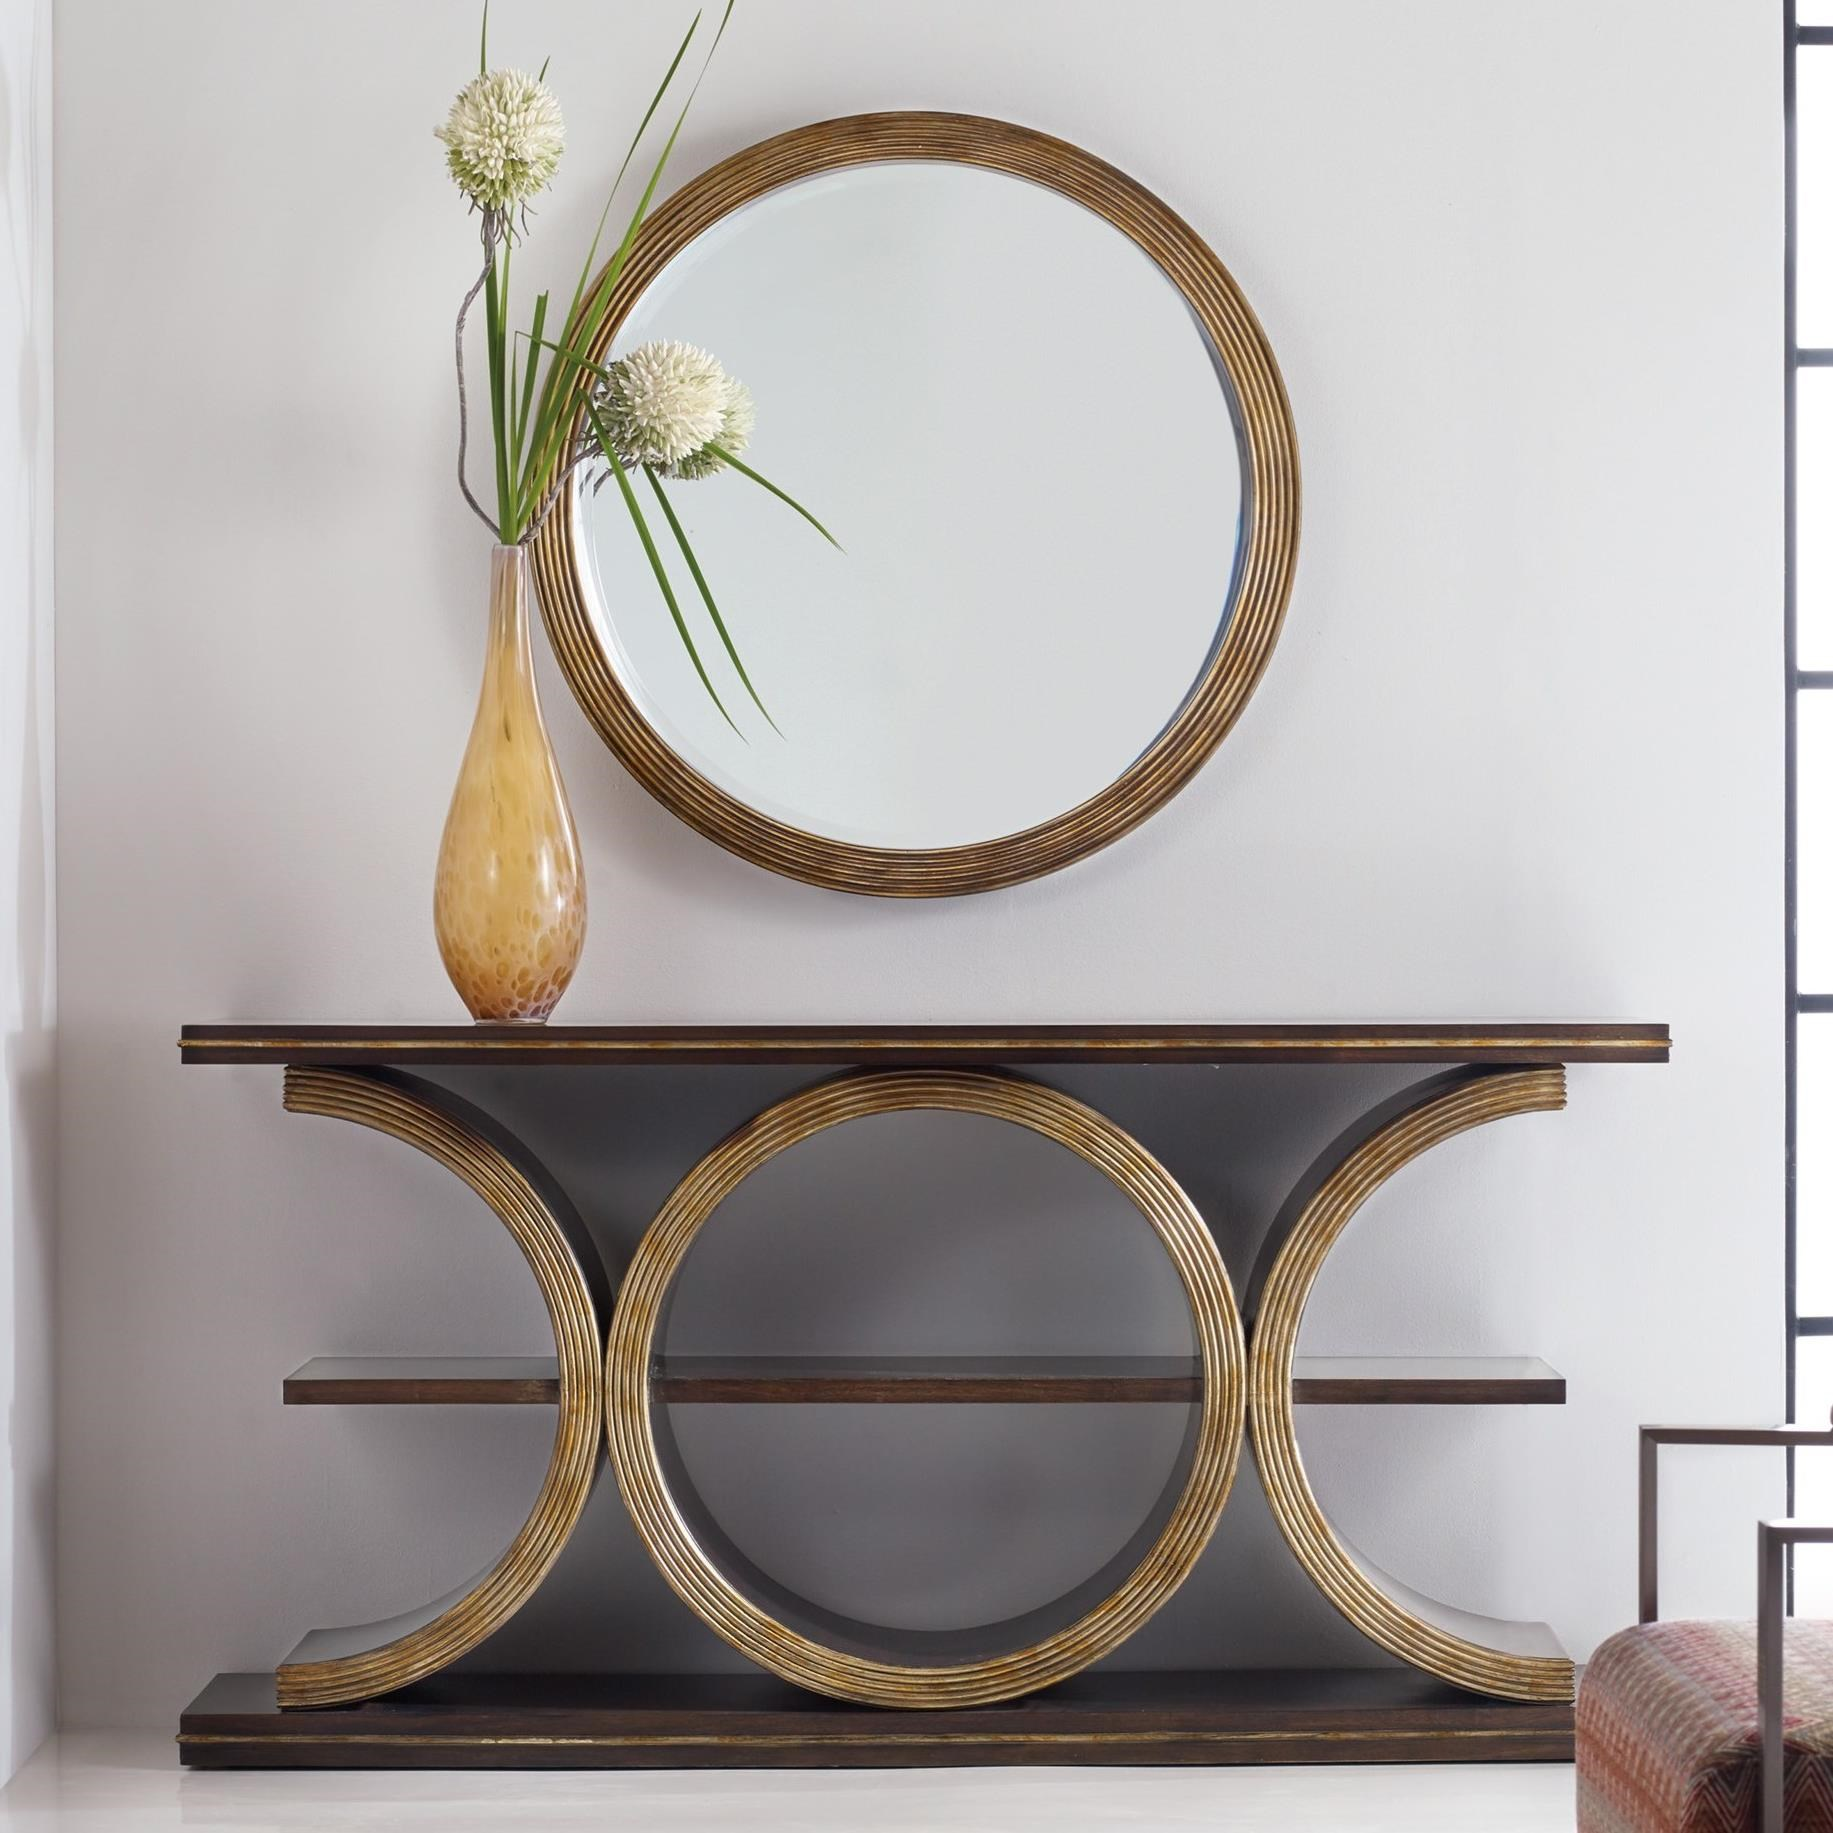 Hooker Furniture Mélange Presidio Console Table and Mirror Group - Item Number: 638-50263